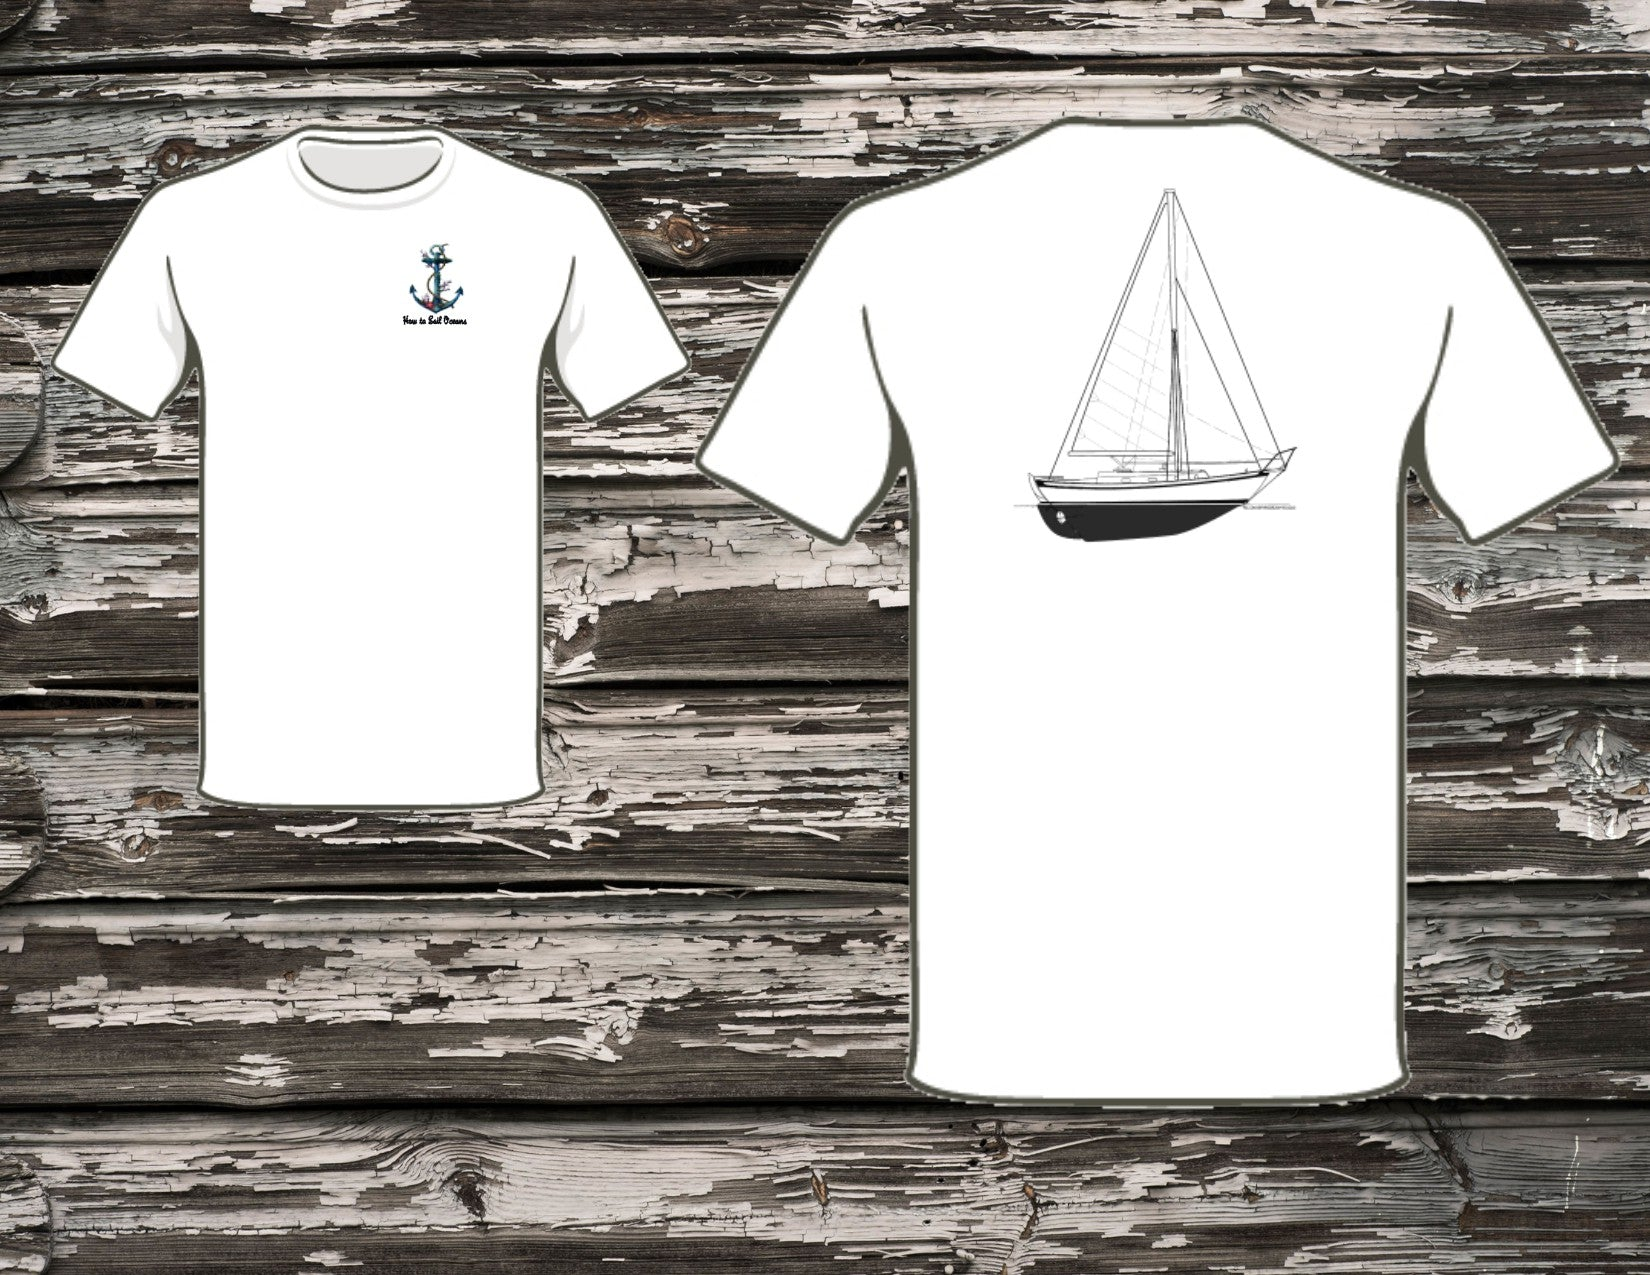 How to Sail Oceans Southern Cross 31 T-Shirt